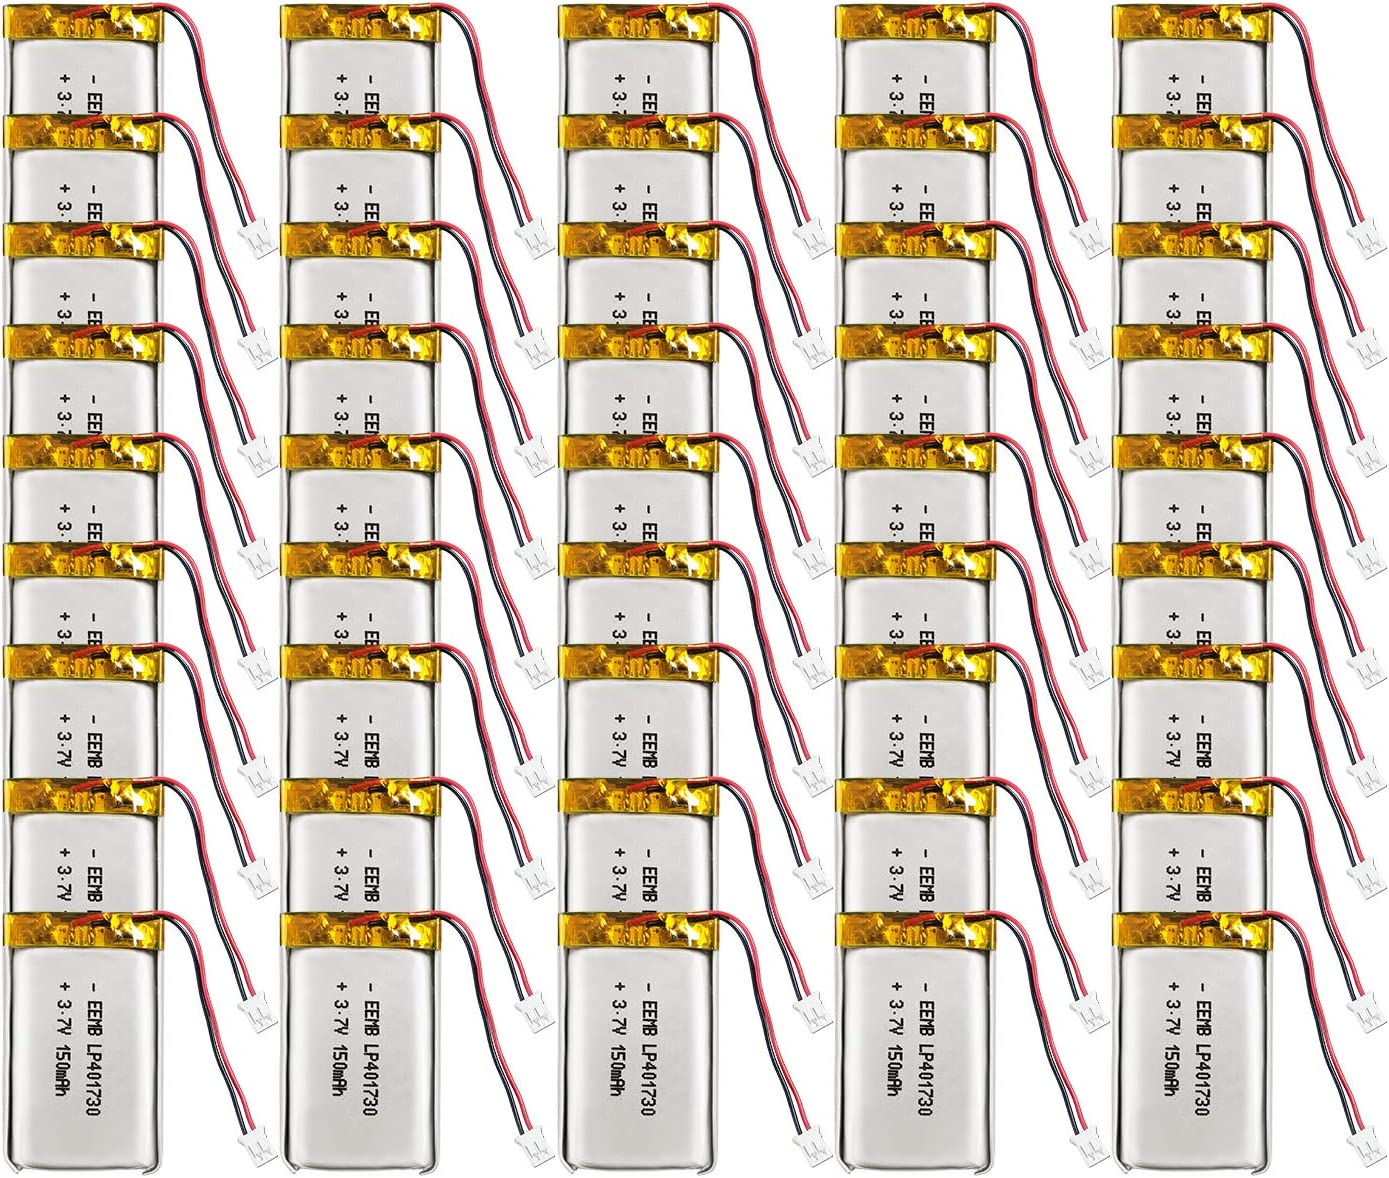 100X EEMB 3.7V Lipo Ranking TOP20 Battery Lithium 401730 Rechargeable Max 48% OFF P 150mAh